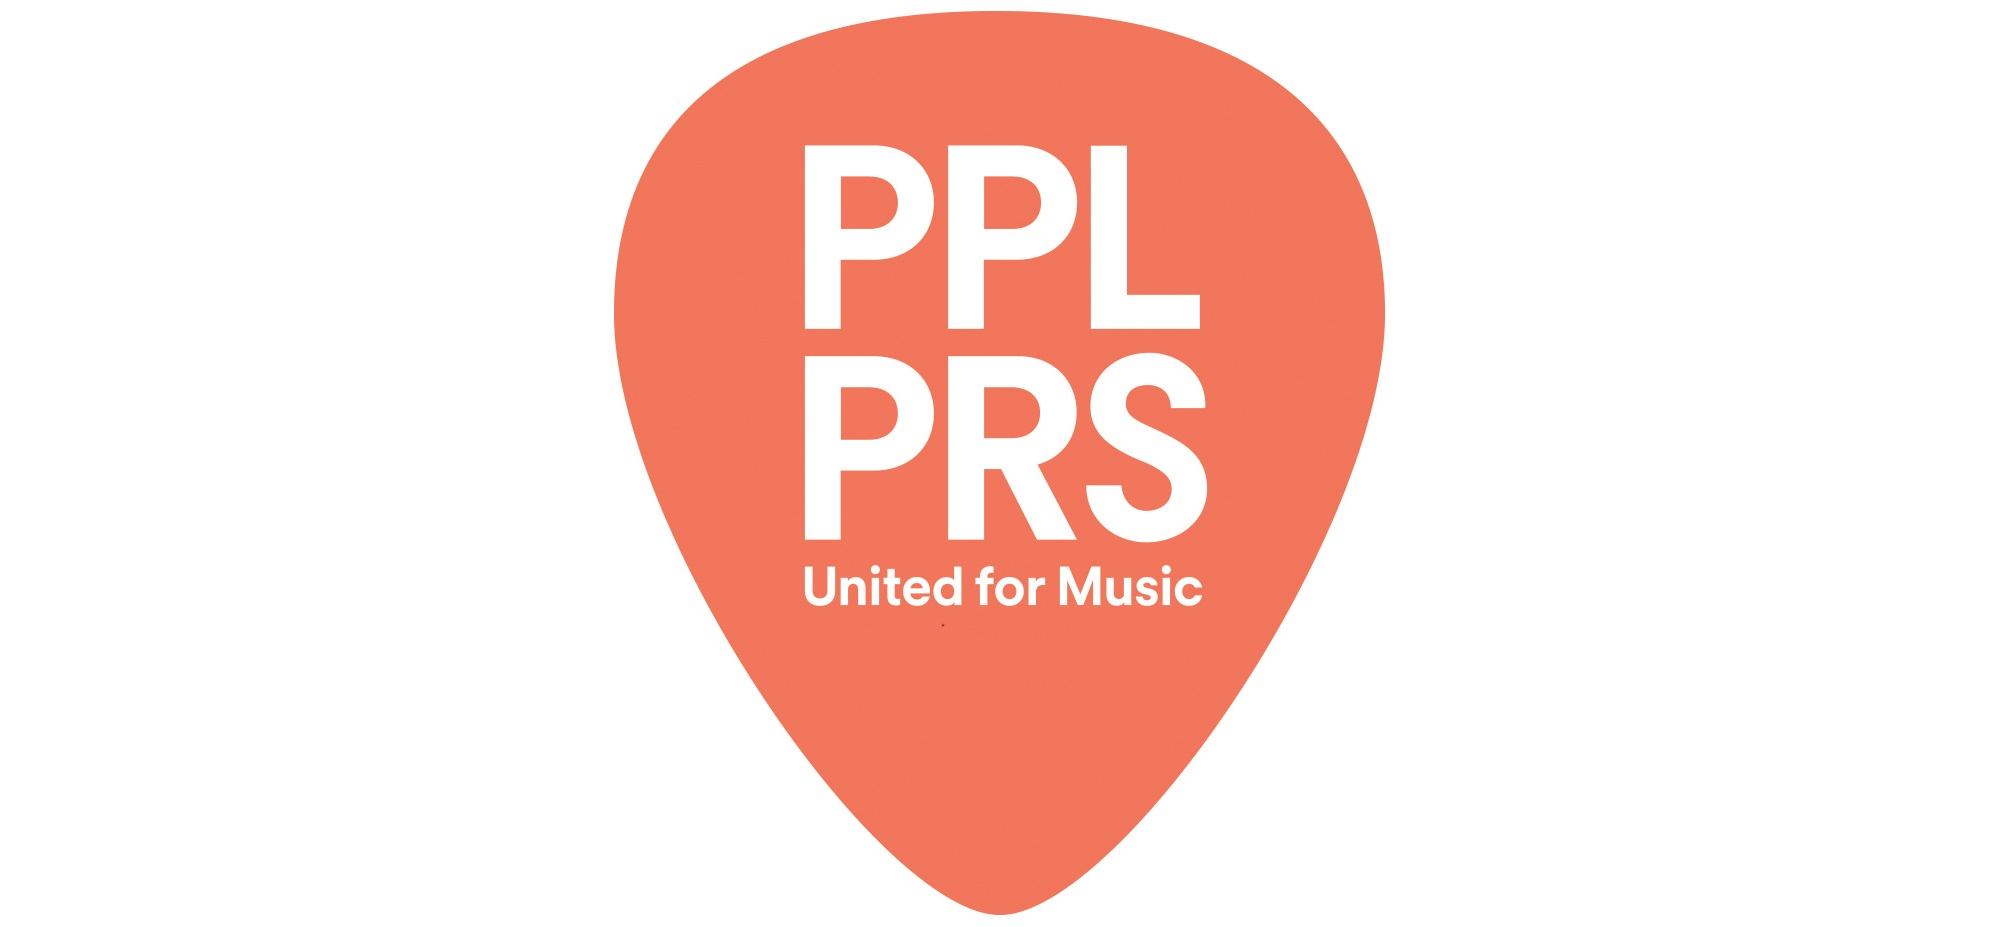 PPL and PRS for Music launch joint venture